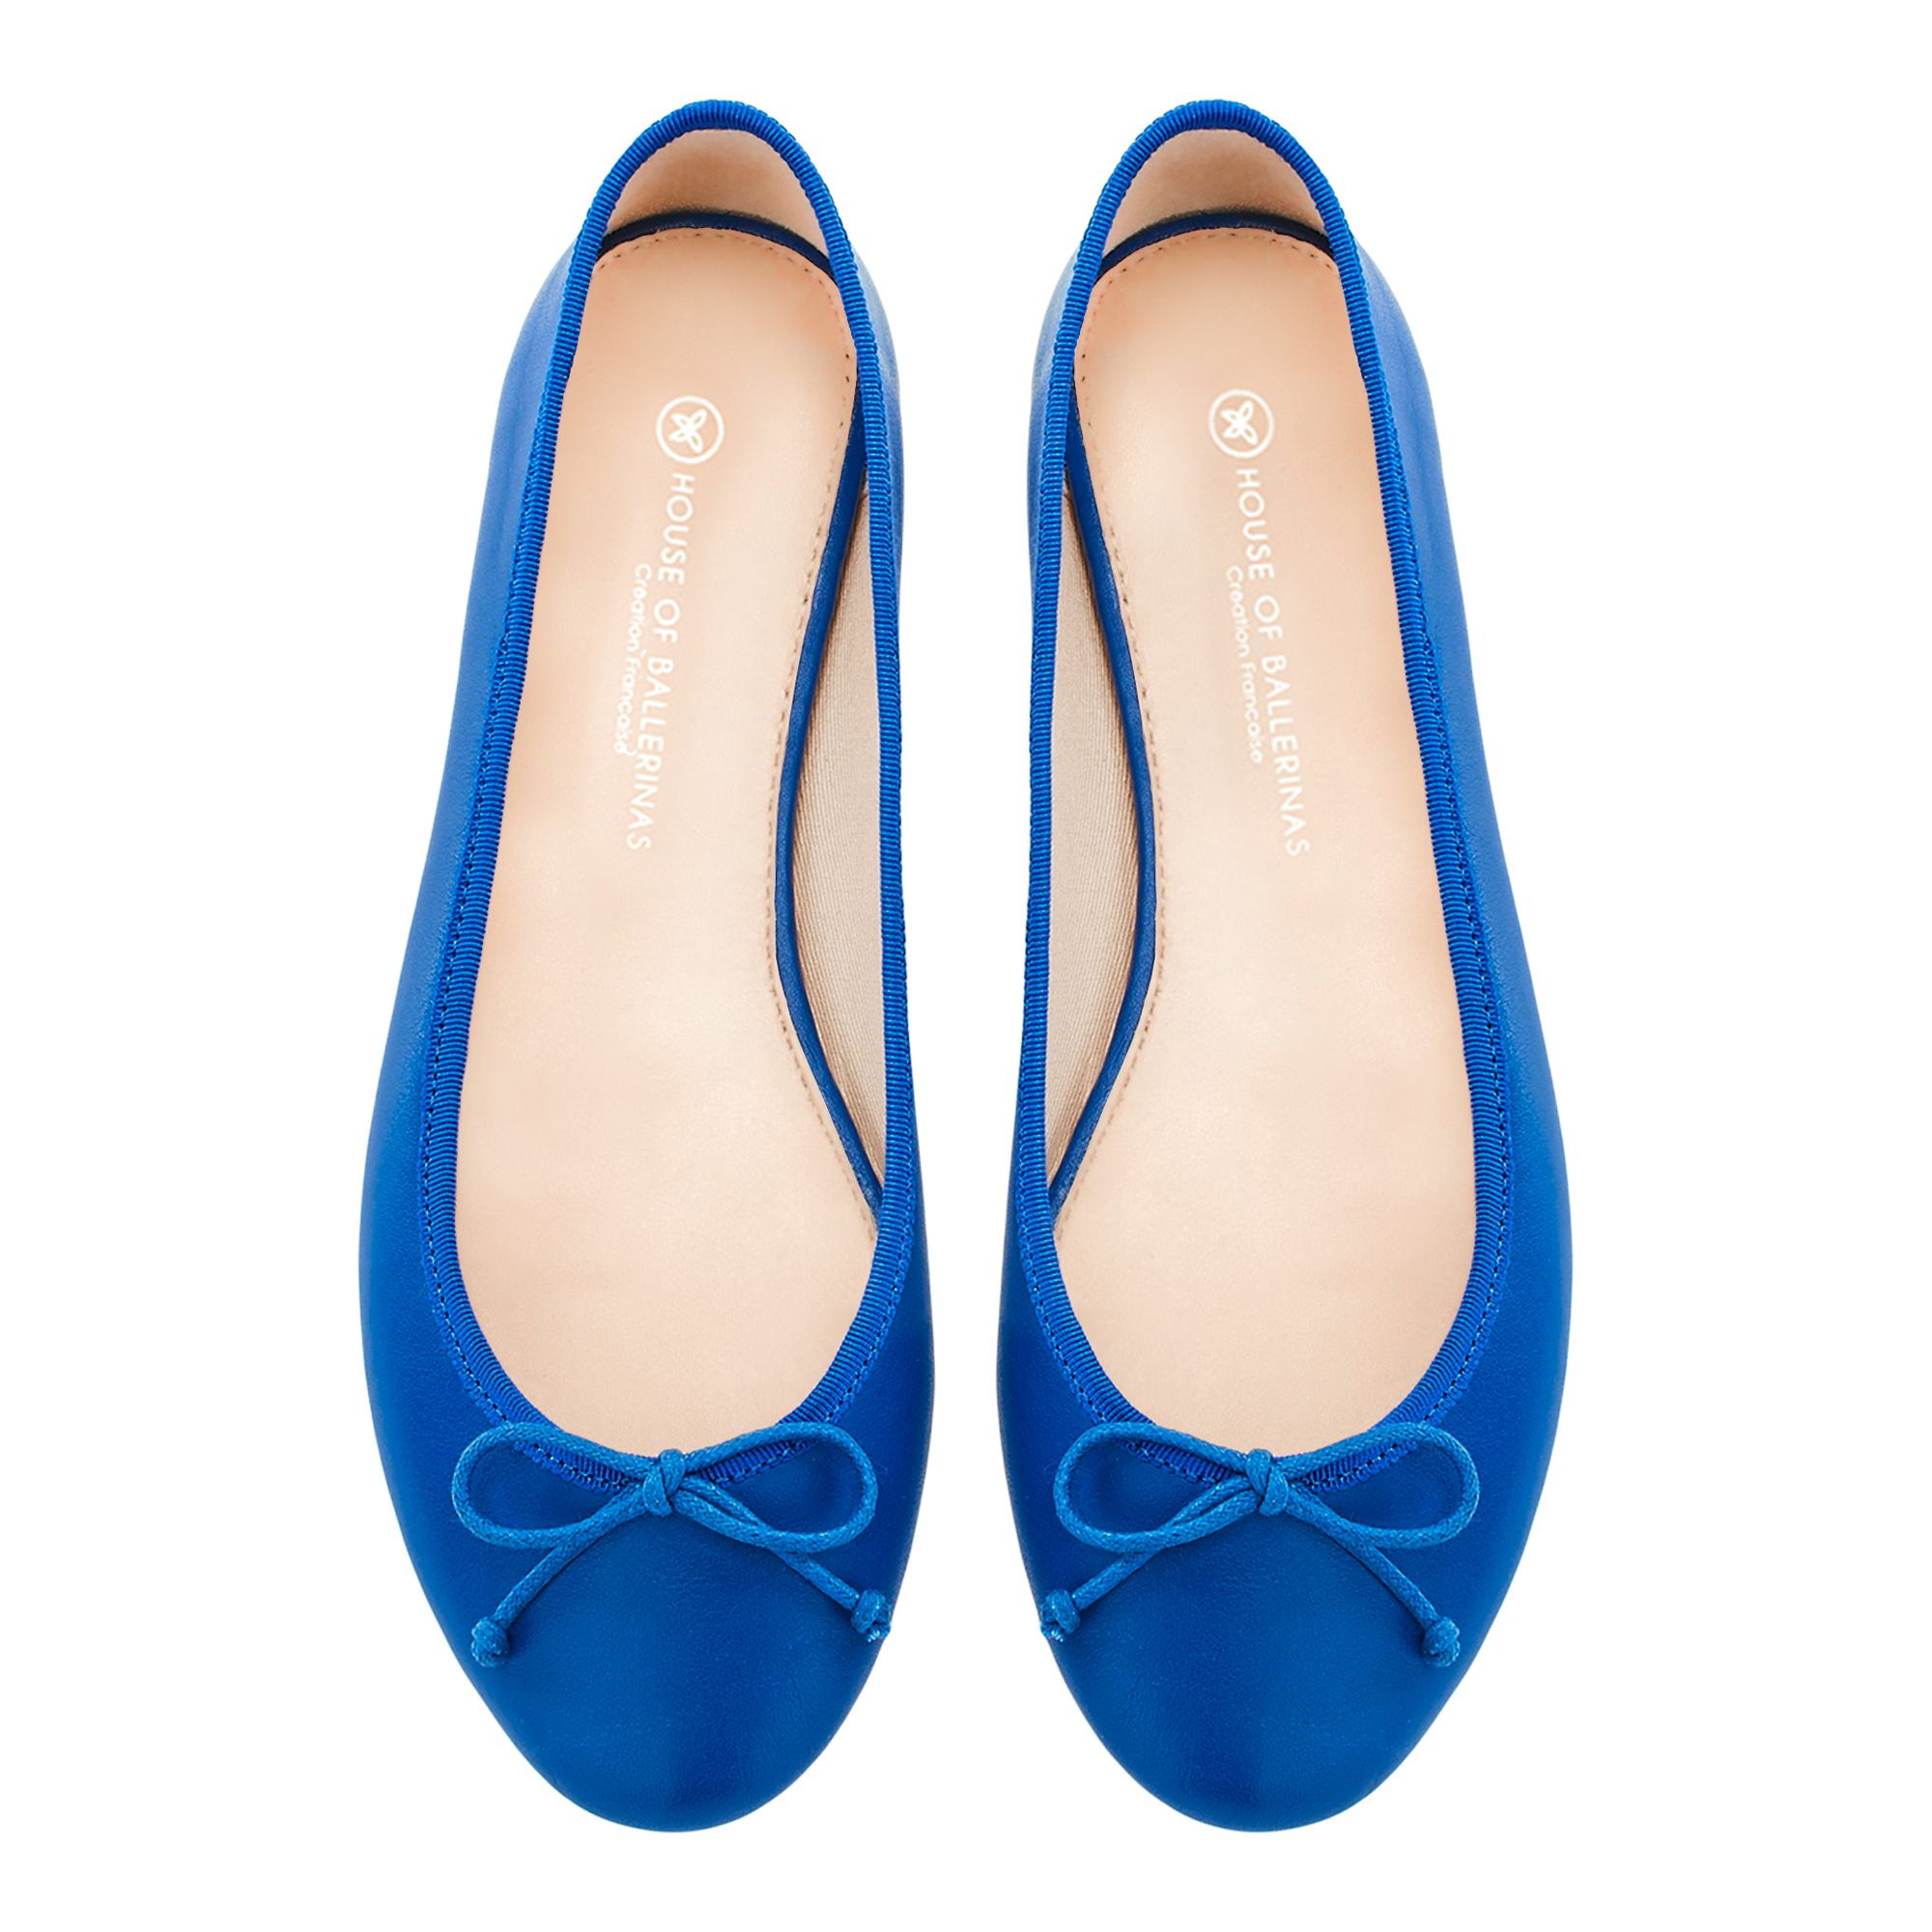 08009506c House of Ballerinas, Ballet Flats Louise Blue shiny patent